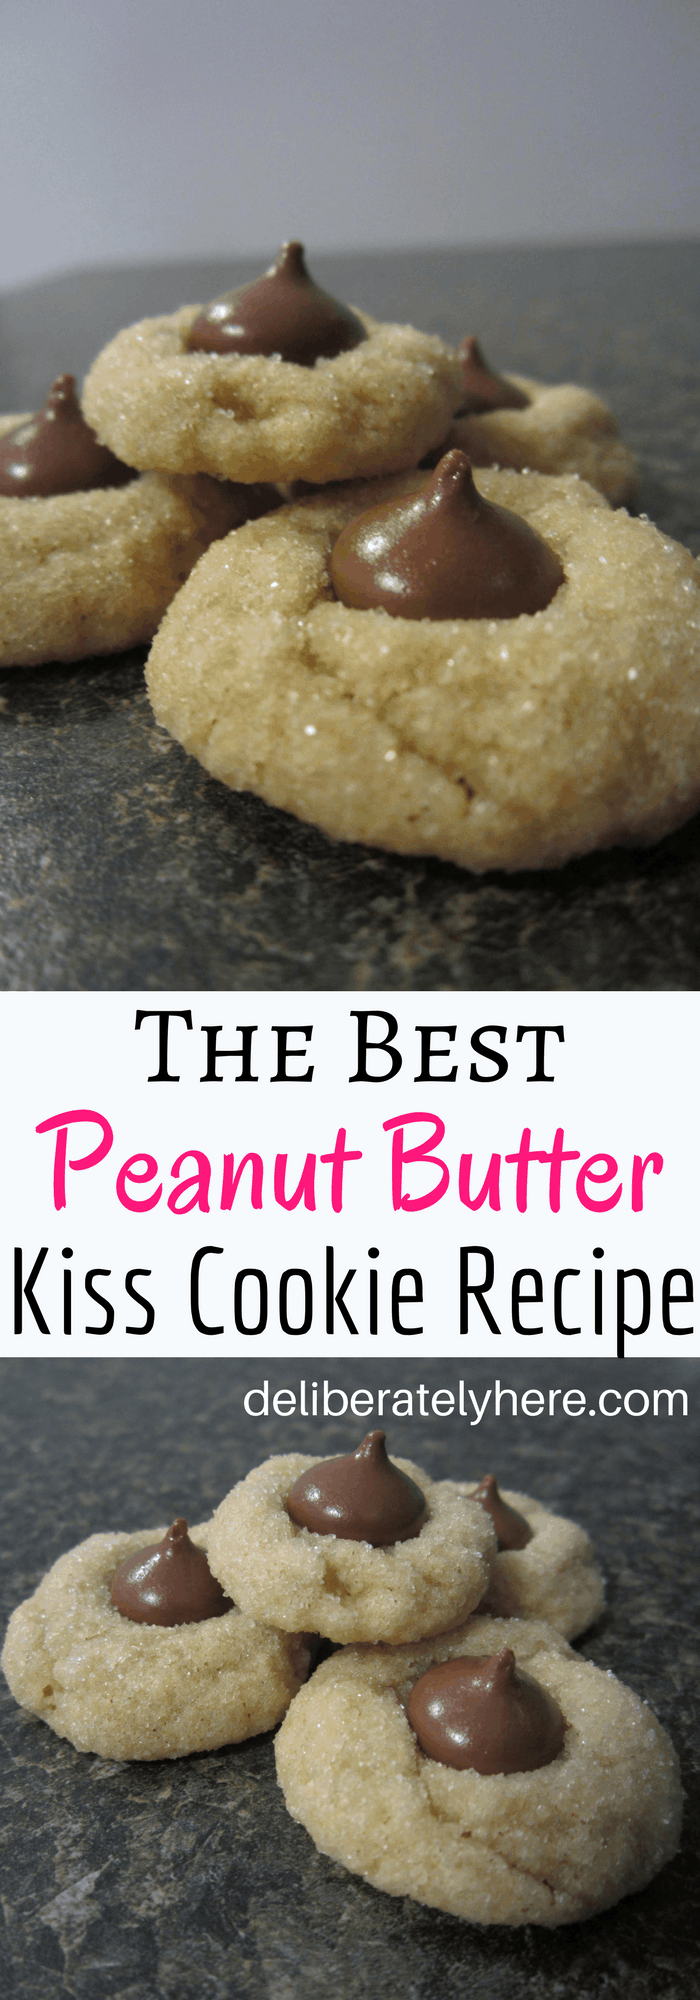 The Best Peanut Butter Kiss Cookies